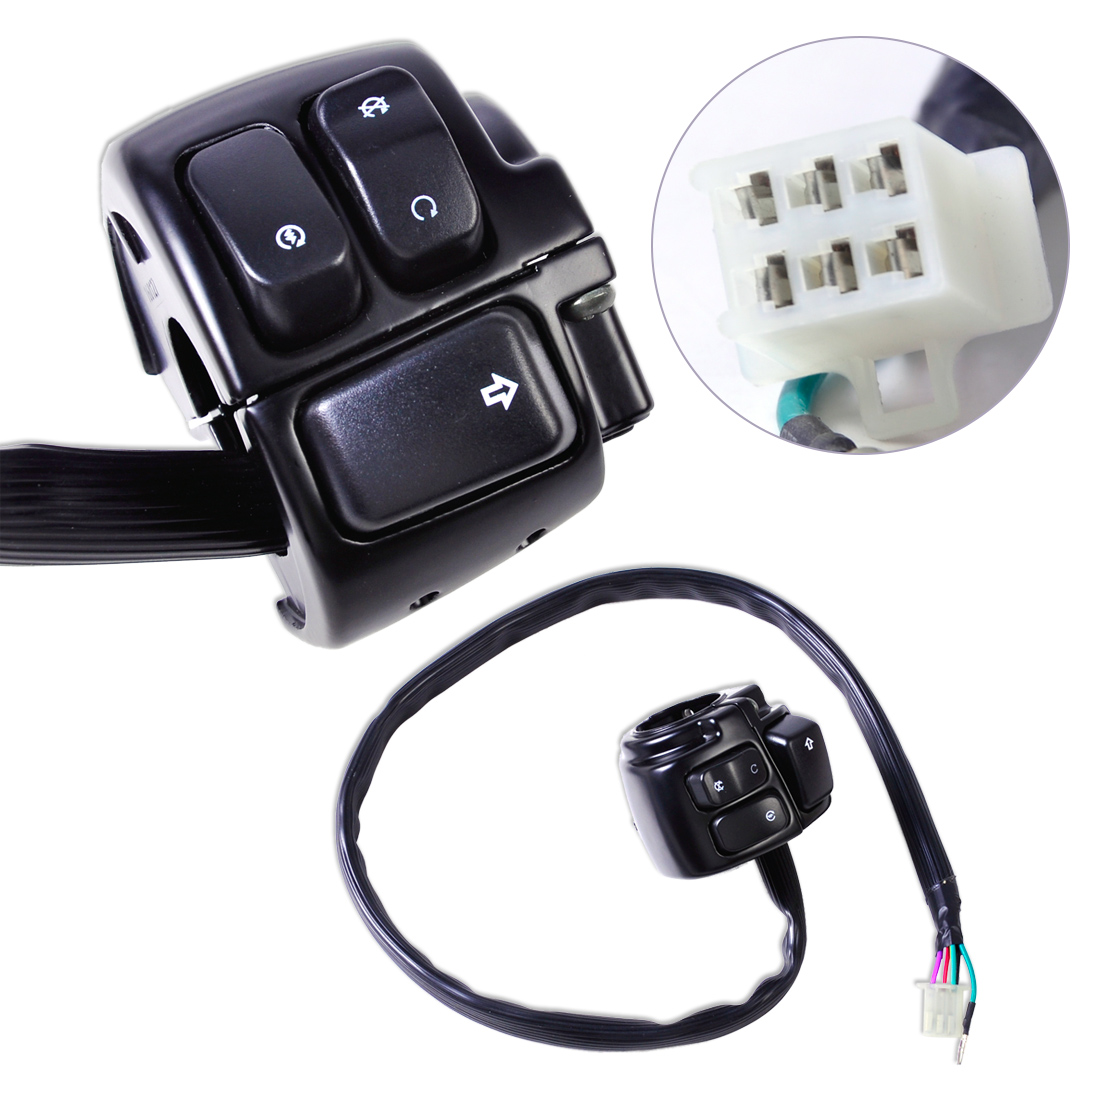 citall motorcycle 1 handlebar ignition kill switch wiring harness for harley davidson softail dyna sportster 1200 883 v rod in motorcycle switches from  [ 1110 x 1110 Pixel ]